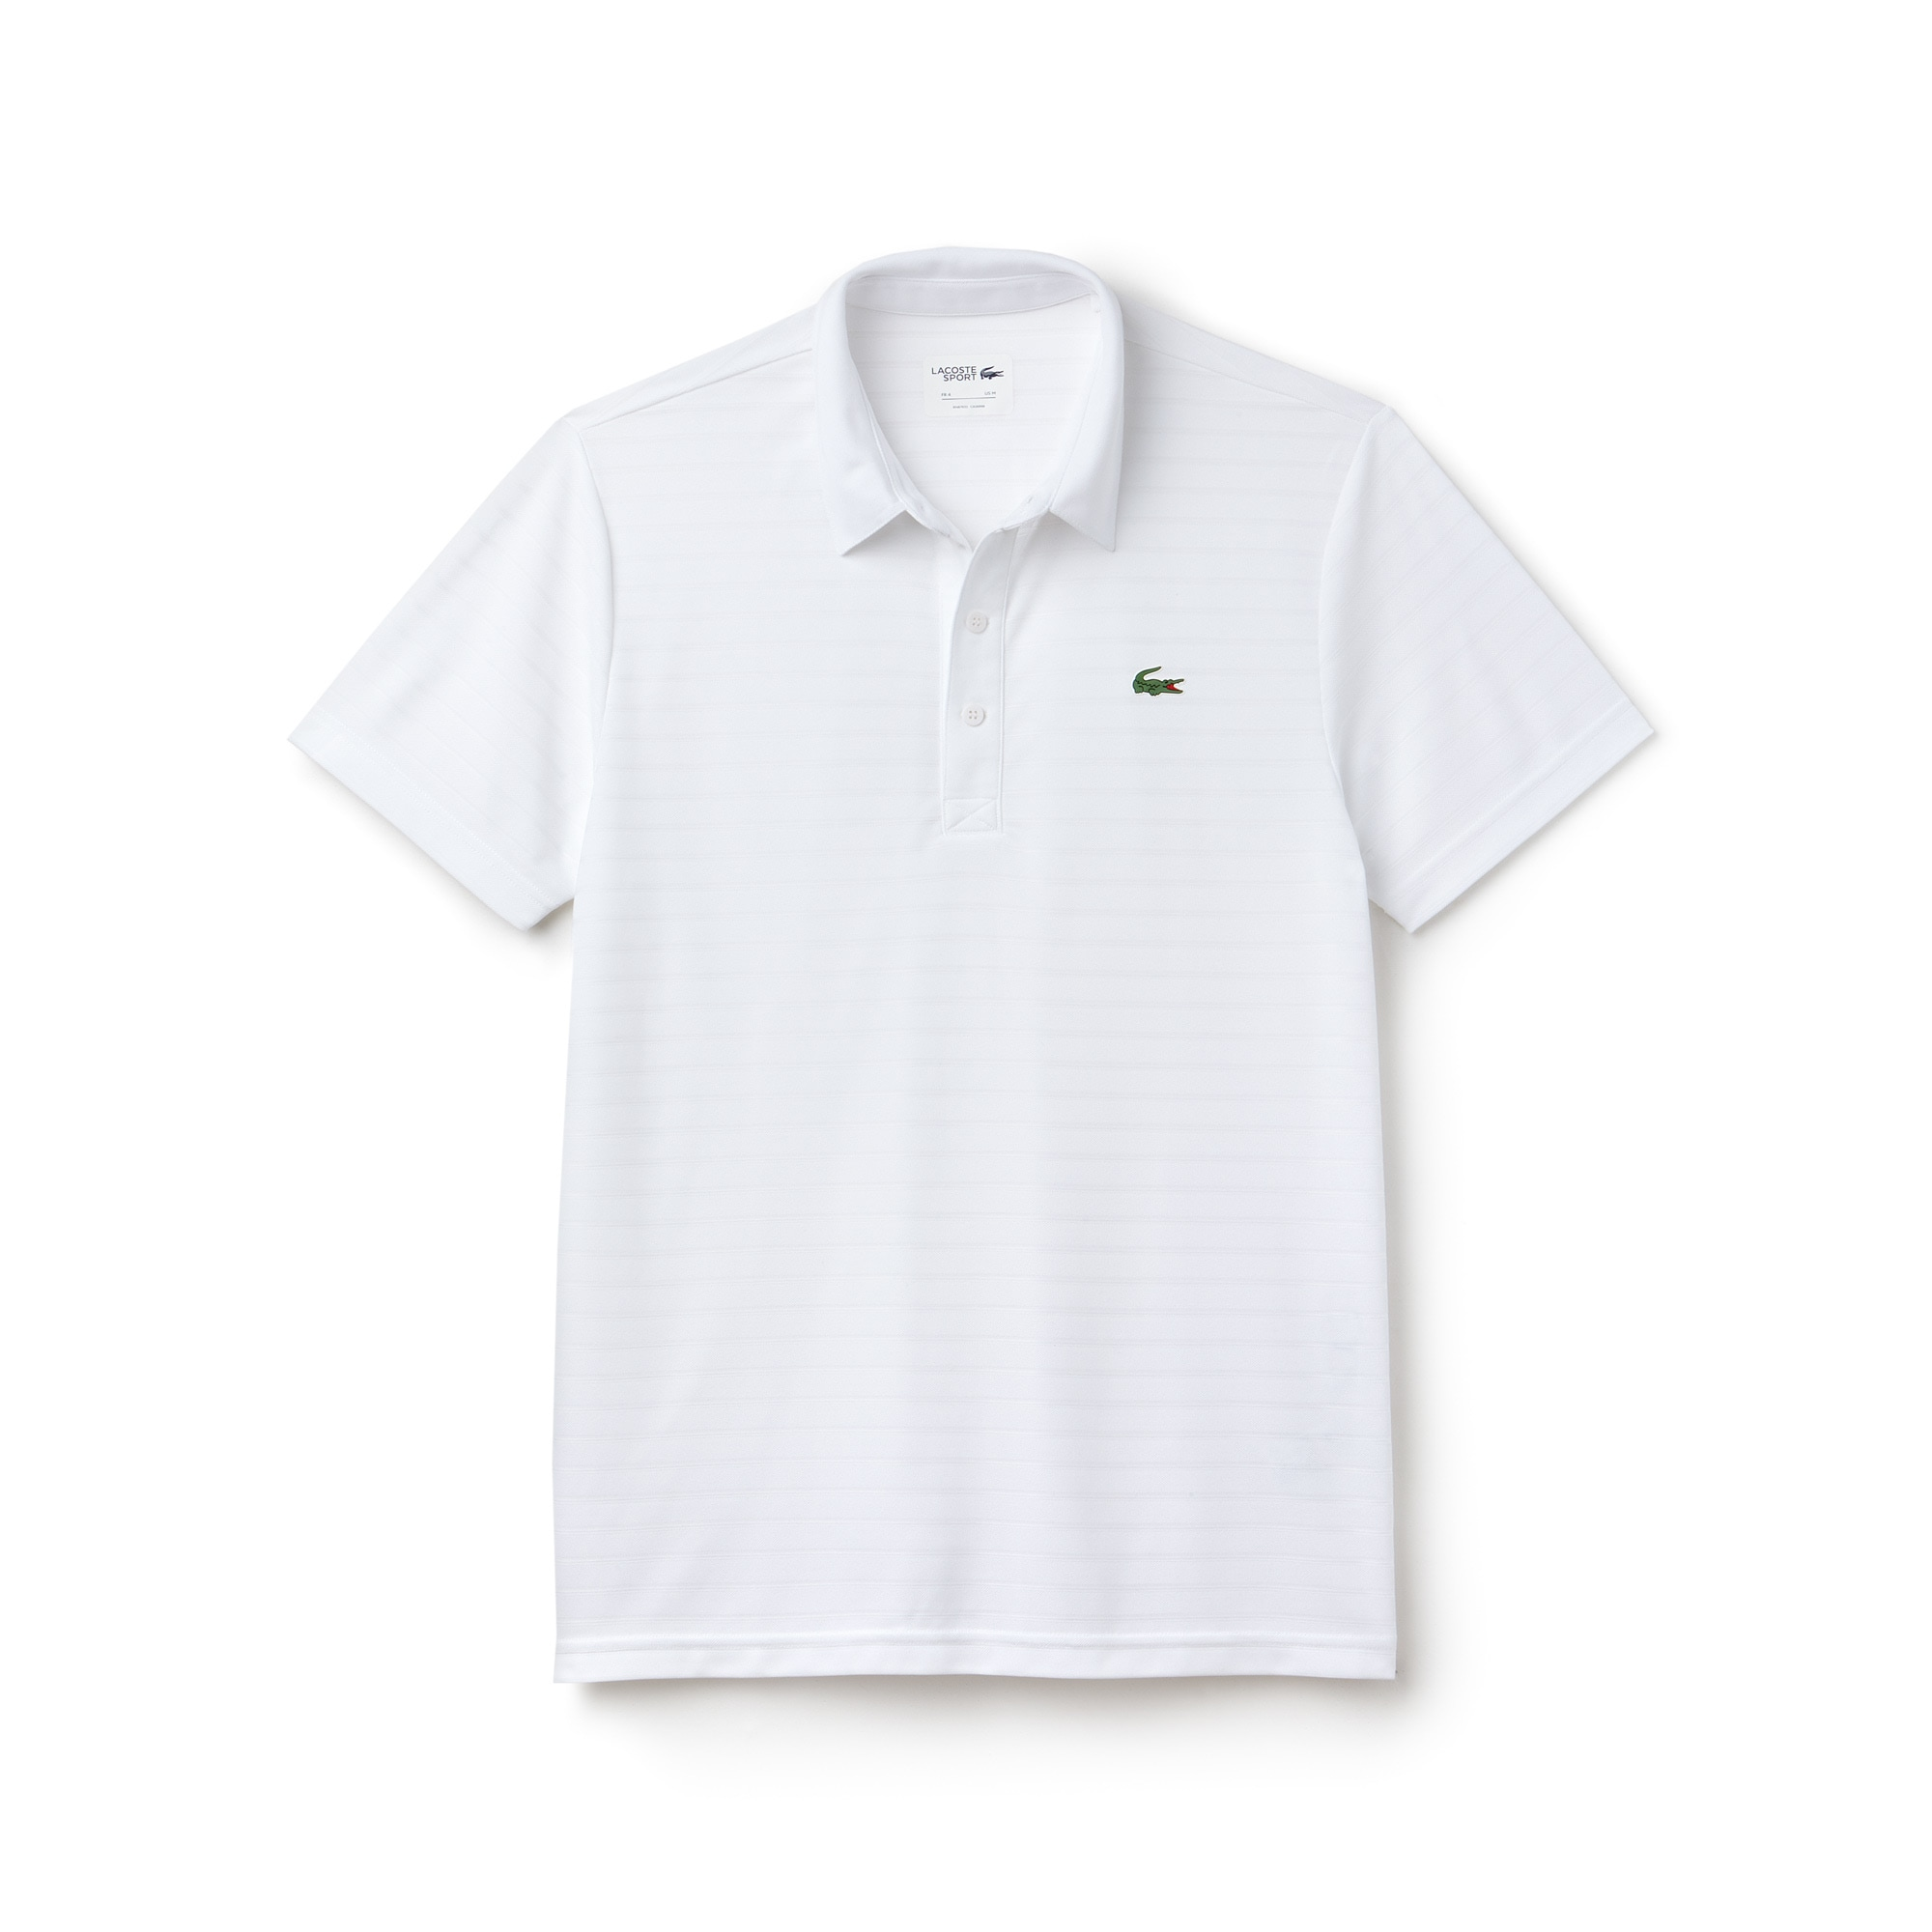 라코스테 Lacoste Mens SPORT Golf Striped Tech Jacquard Jersey Polo Shirt,white